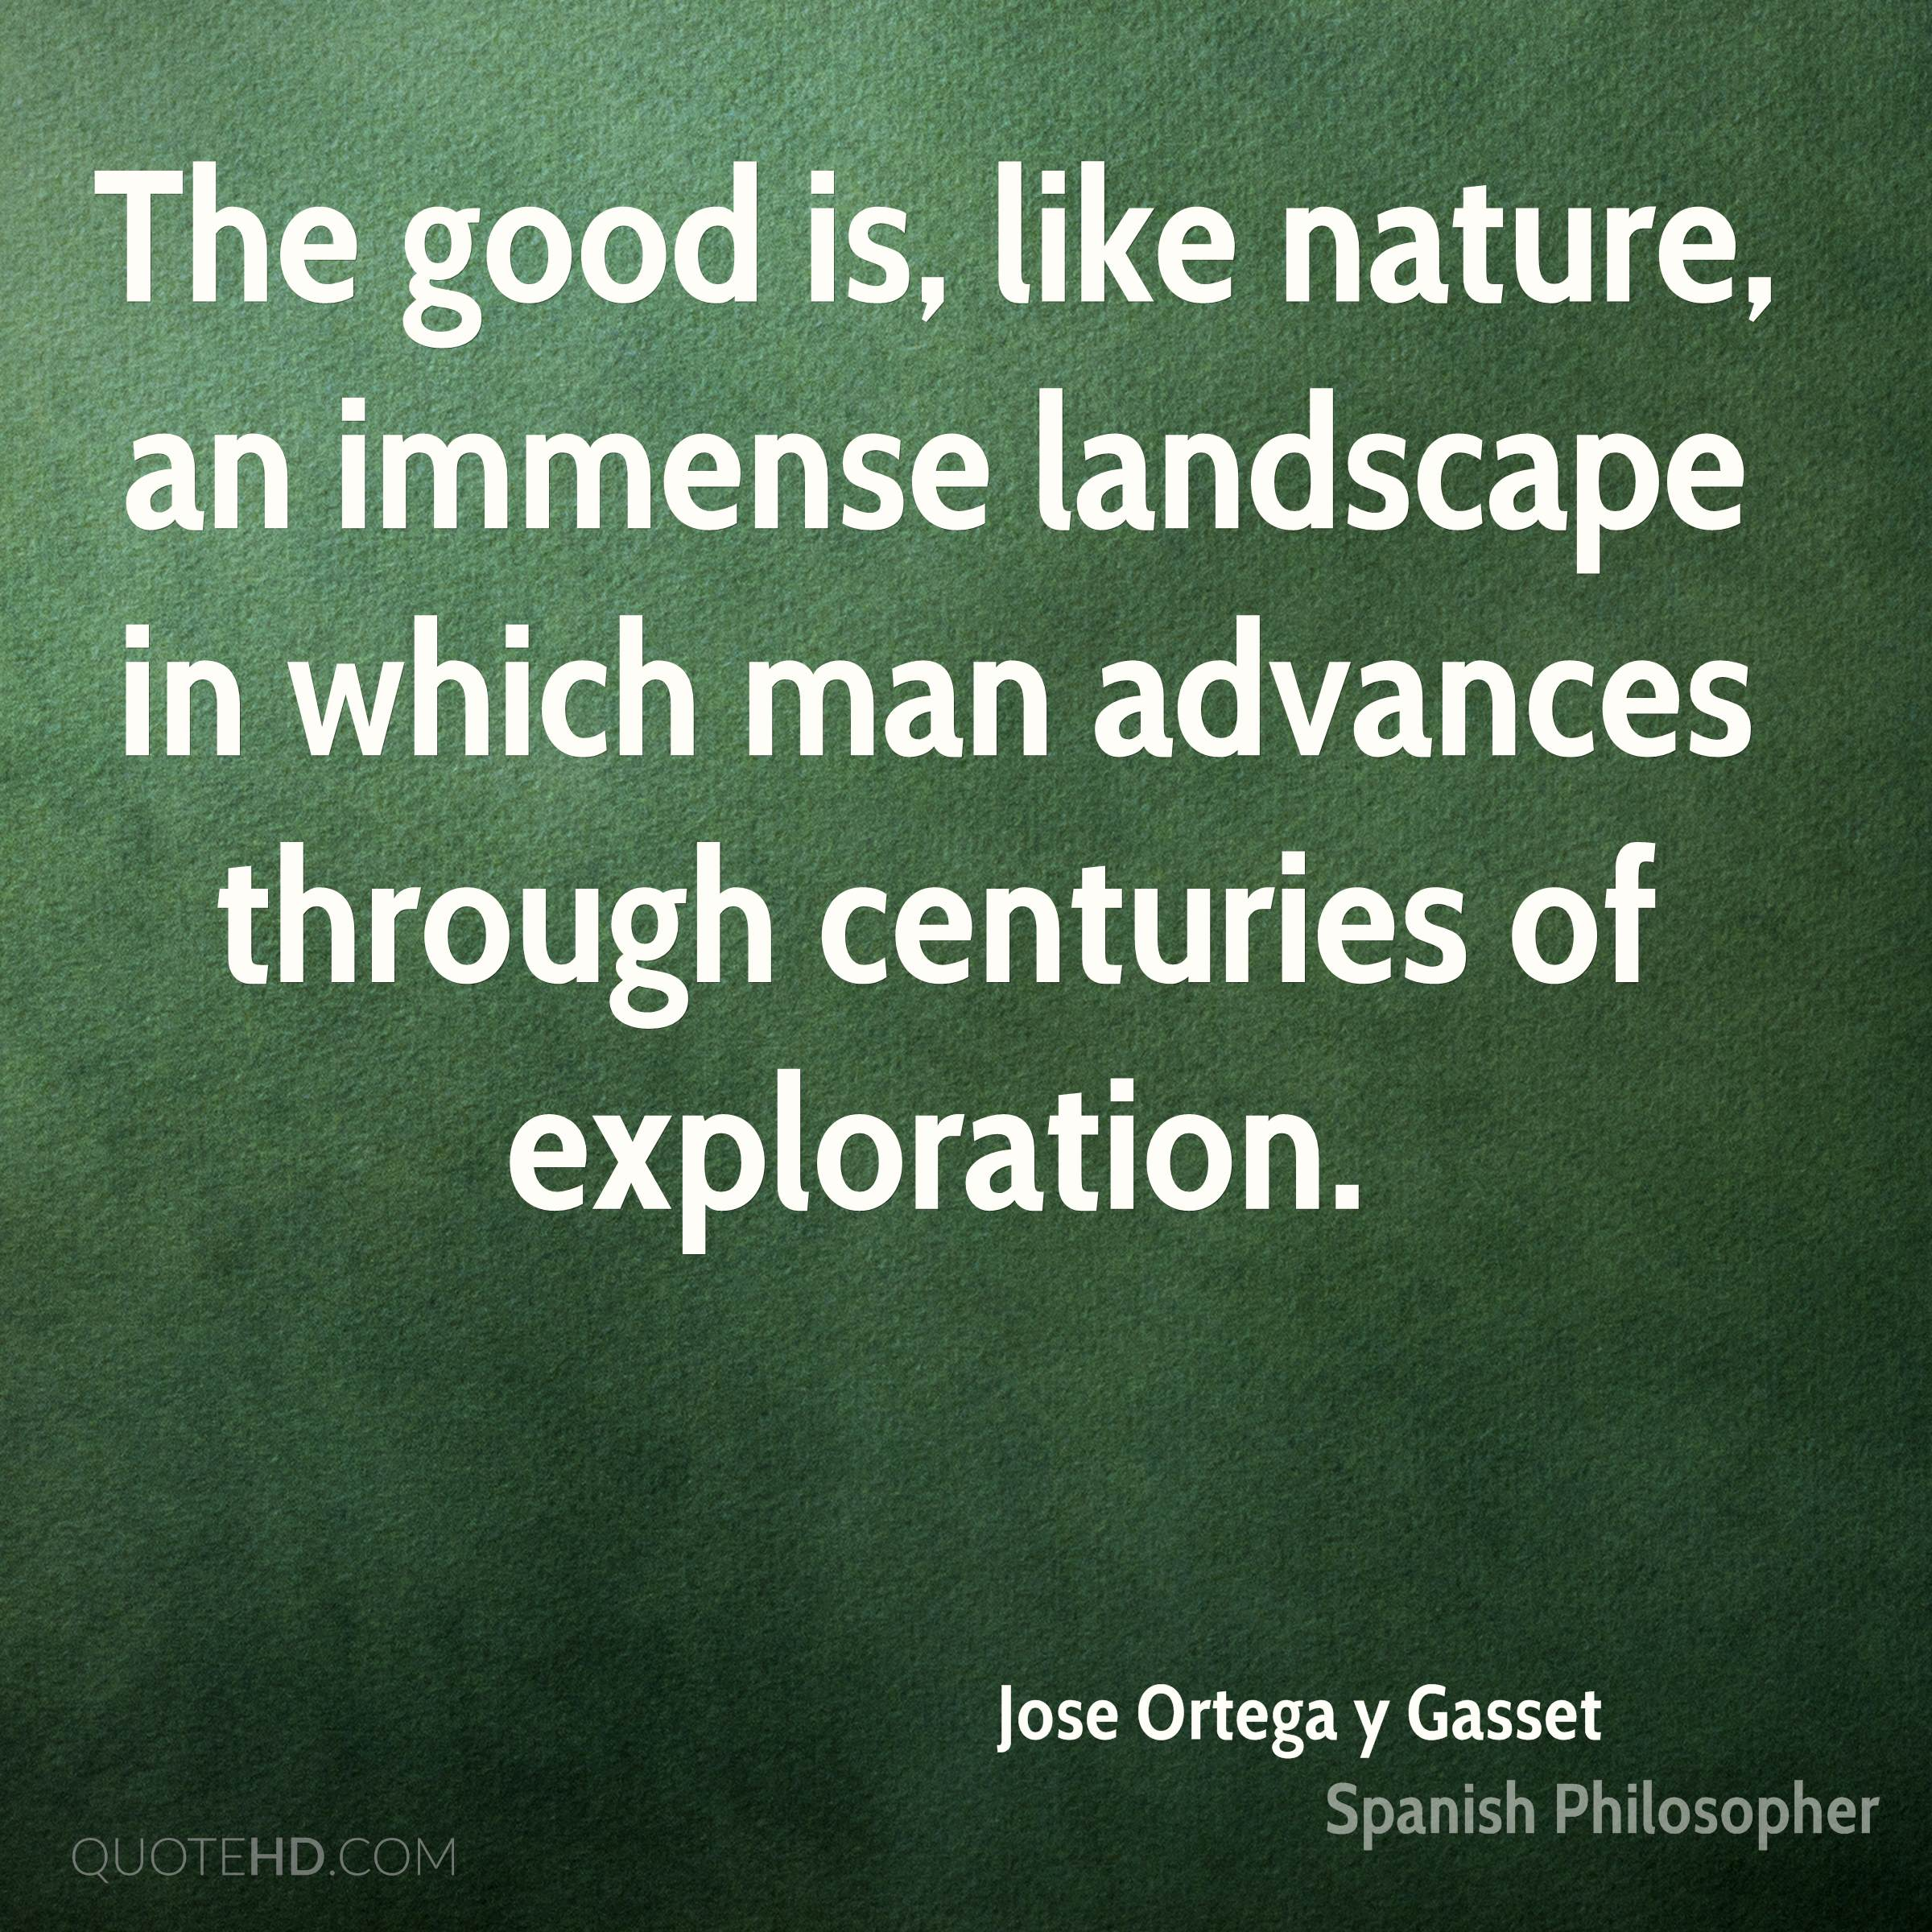 Quotes About Landscape Jose Ortega Y Gasset Nature Quotes  Quotehd